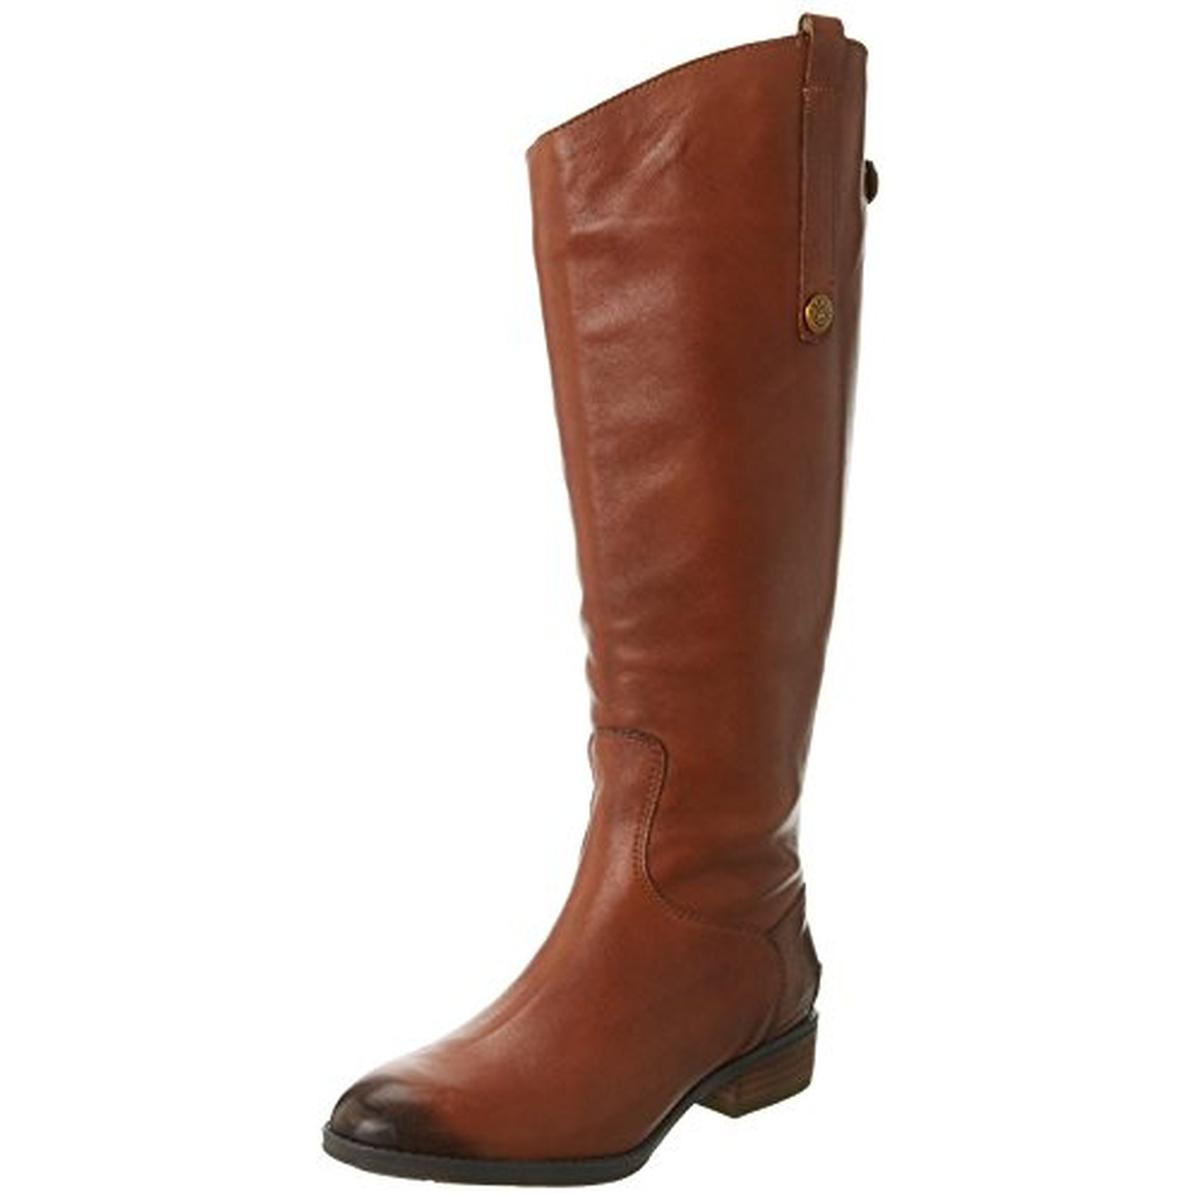 Sam Edelman Womens Penny 2 Wide Calf Leather Riding Boots